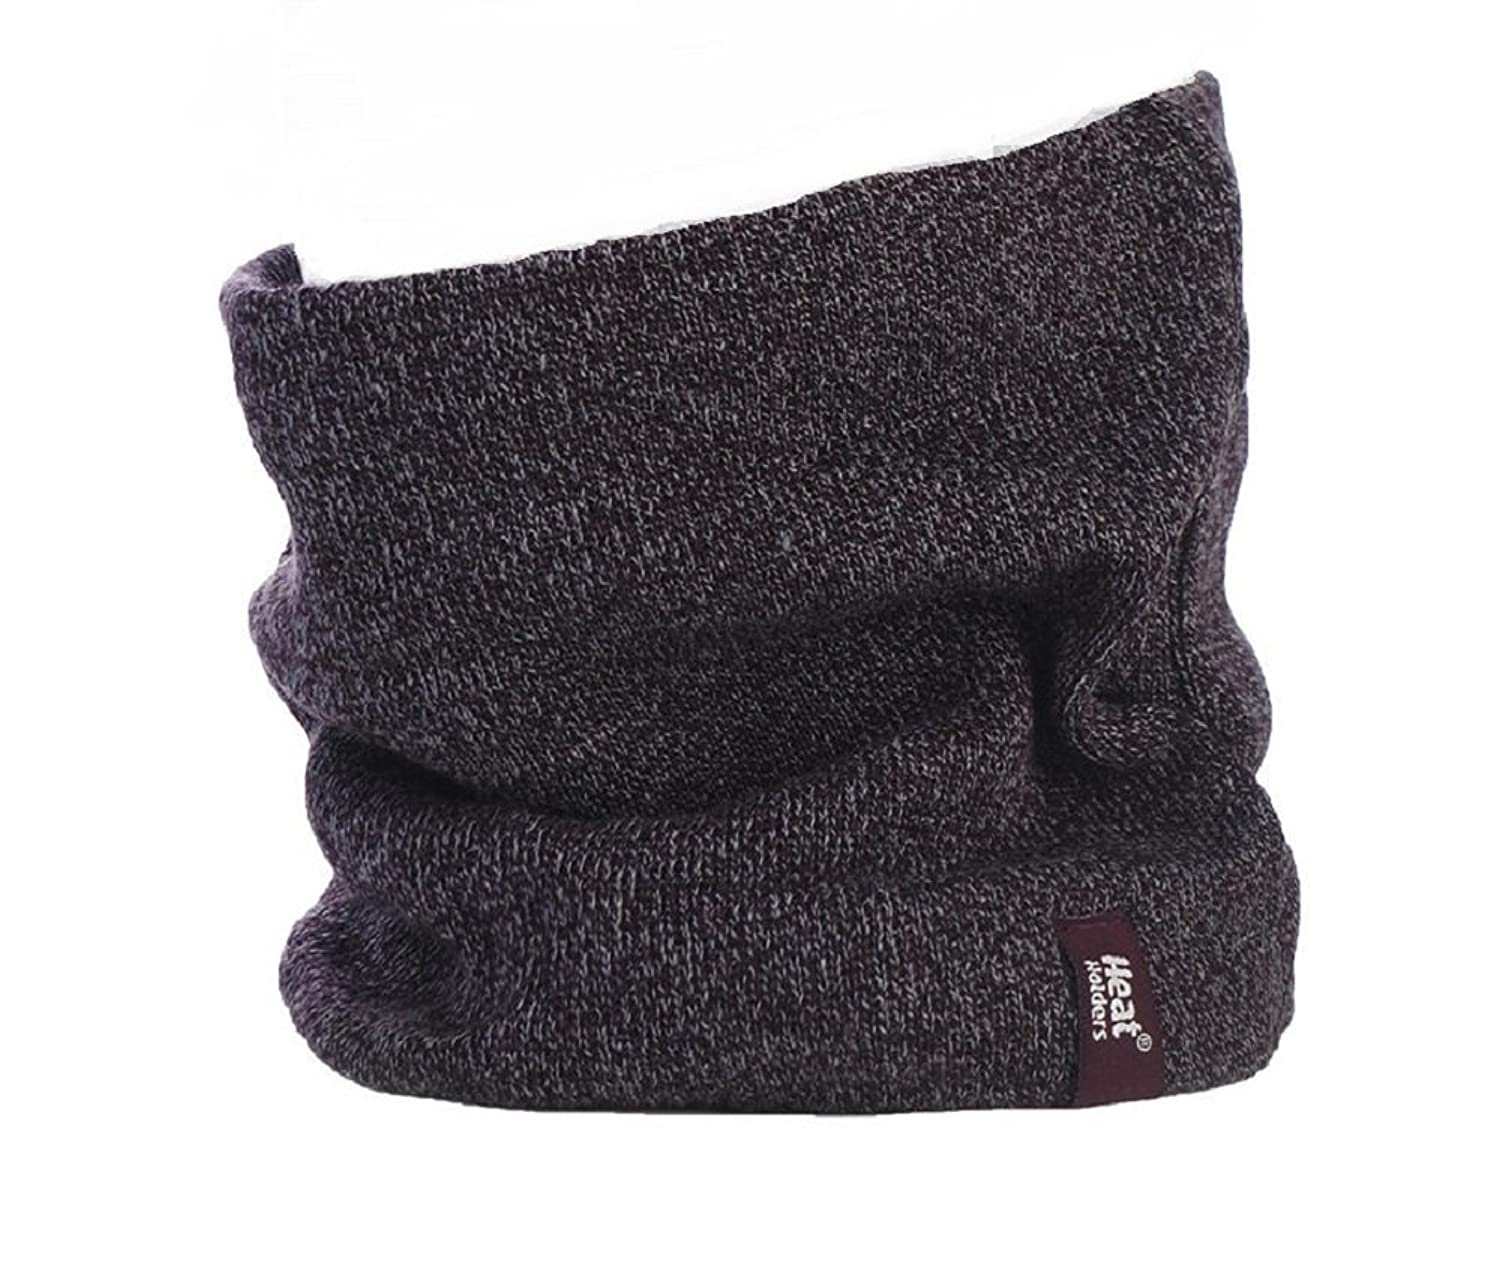 Mens-echte Thermo-Fleece -Winter-warme Hitze Inhaber tog Bewertung von 2,6 - Neck Warmer Rundschal Burgund